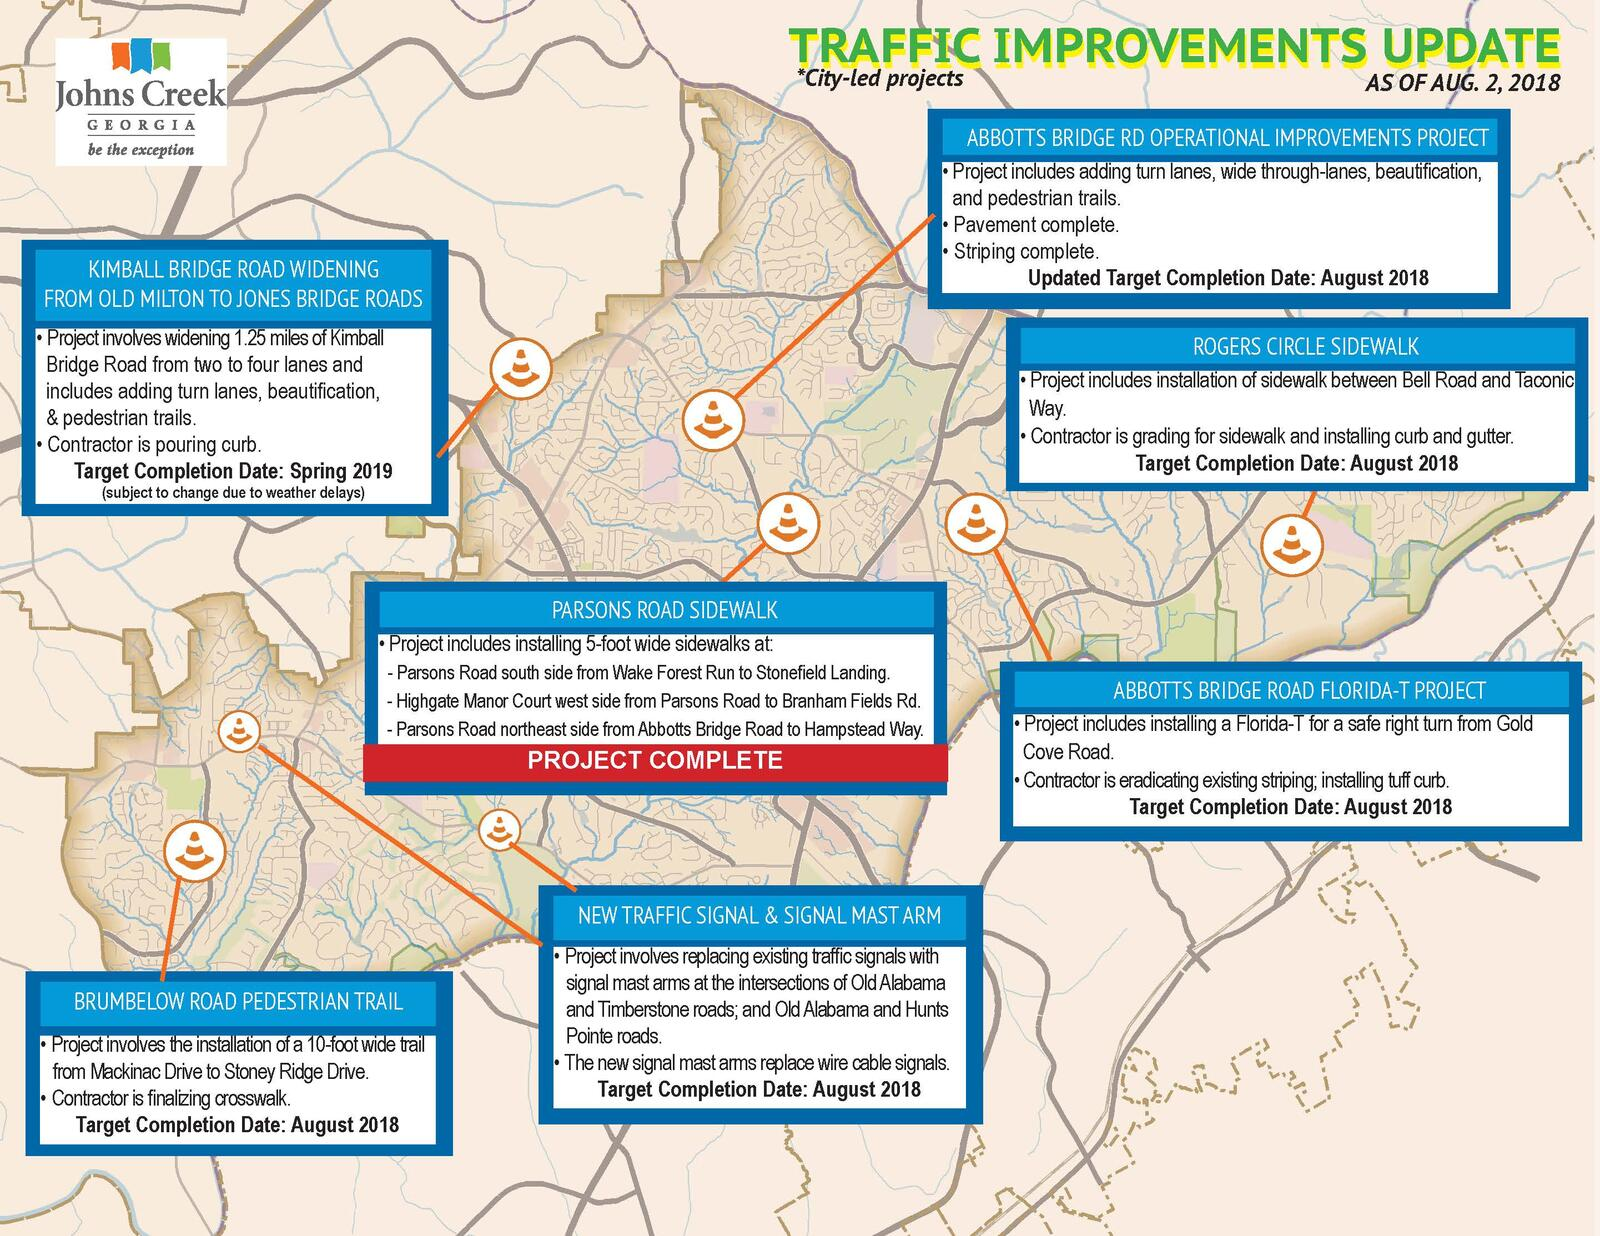 View traffic improvement projects in Johns Creek City of Johns